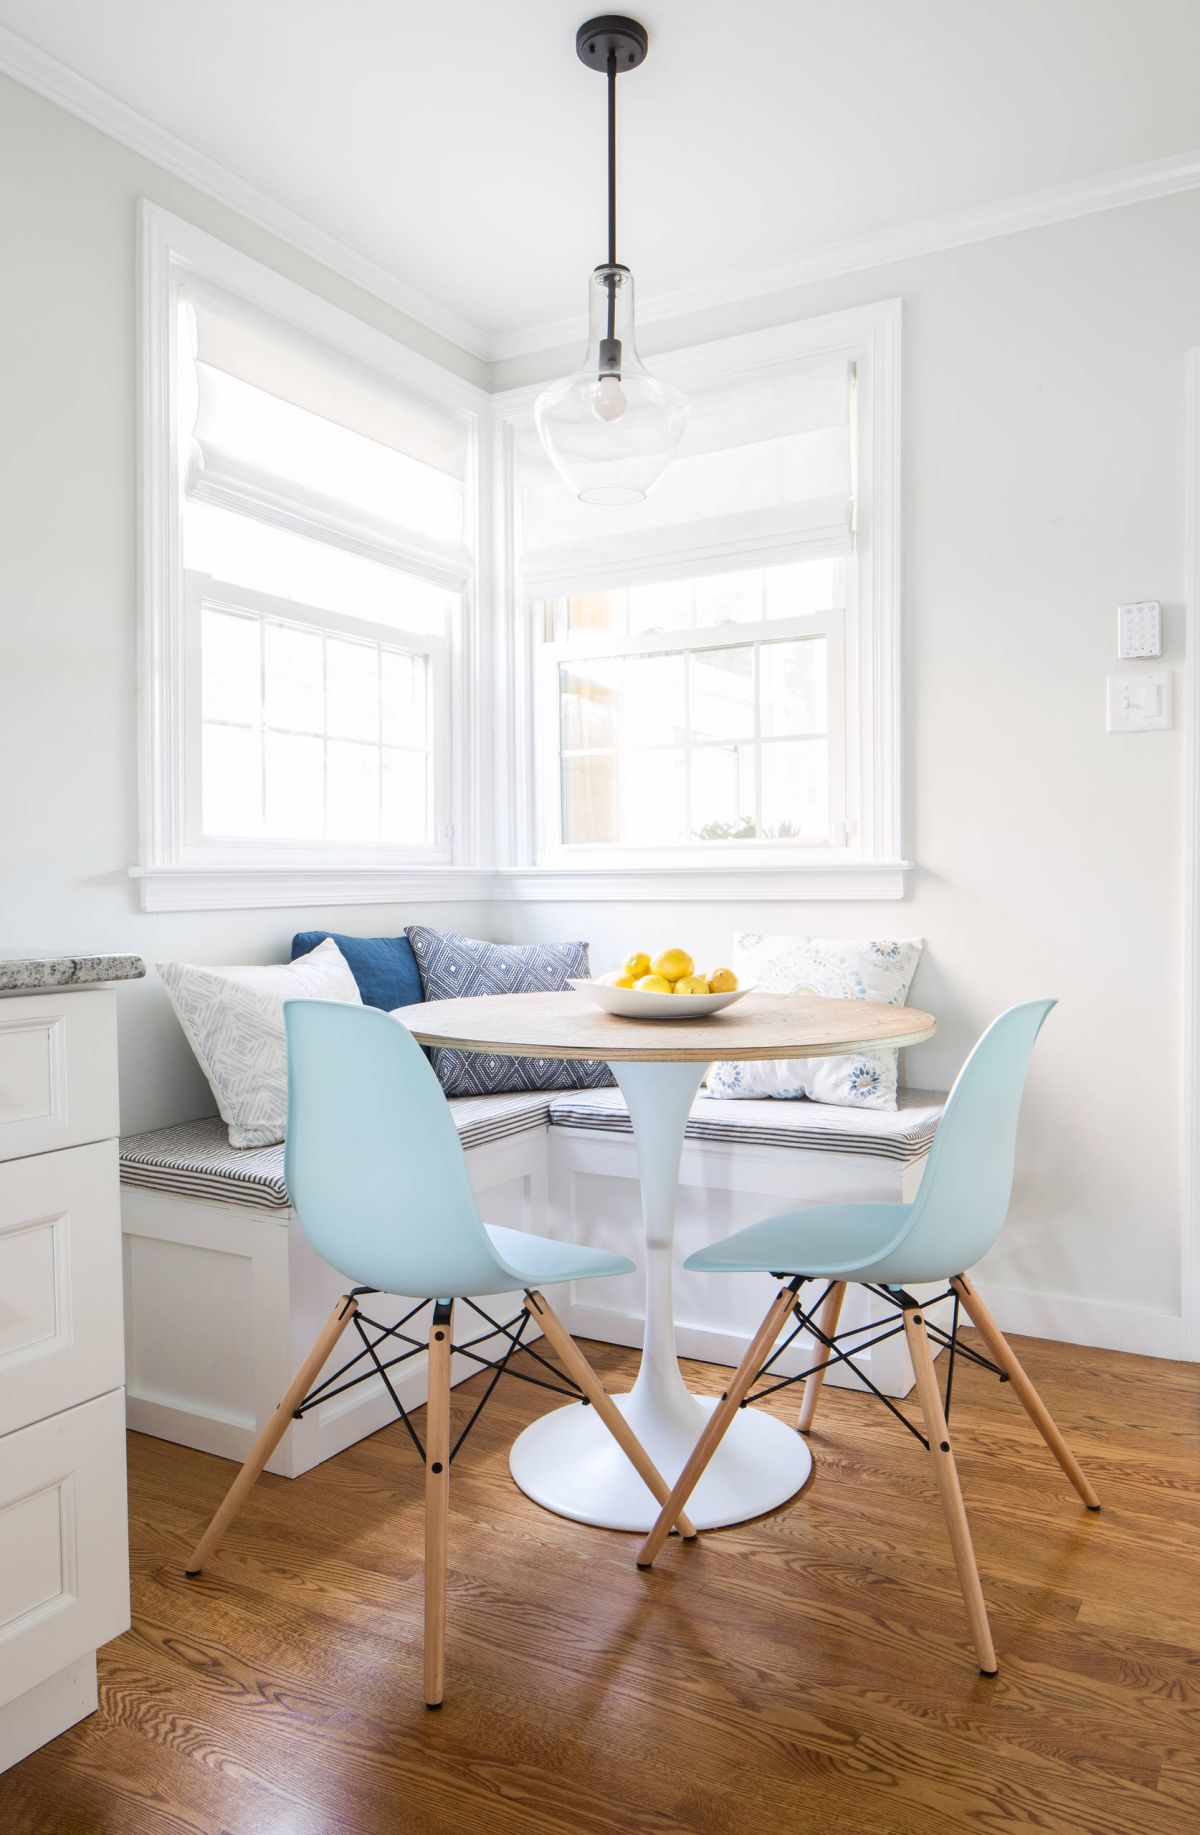 30 breakfast nook bench ideas that will cheer up your mornings